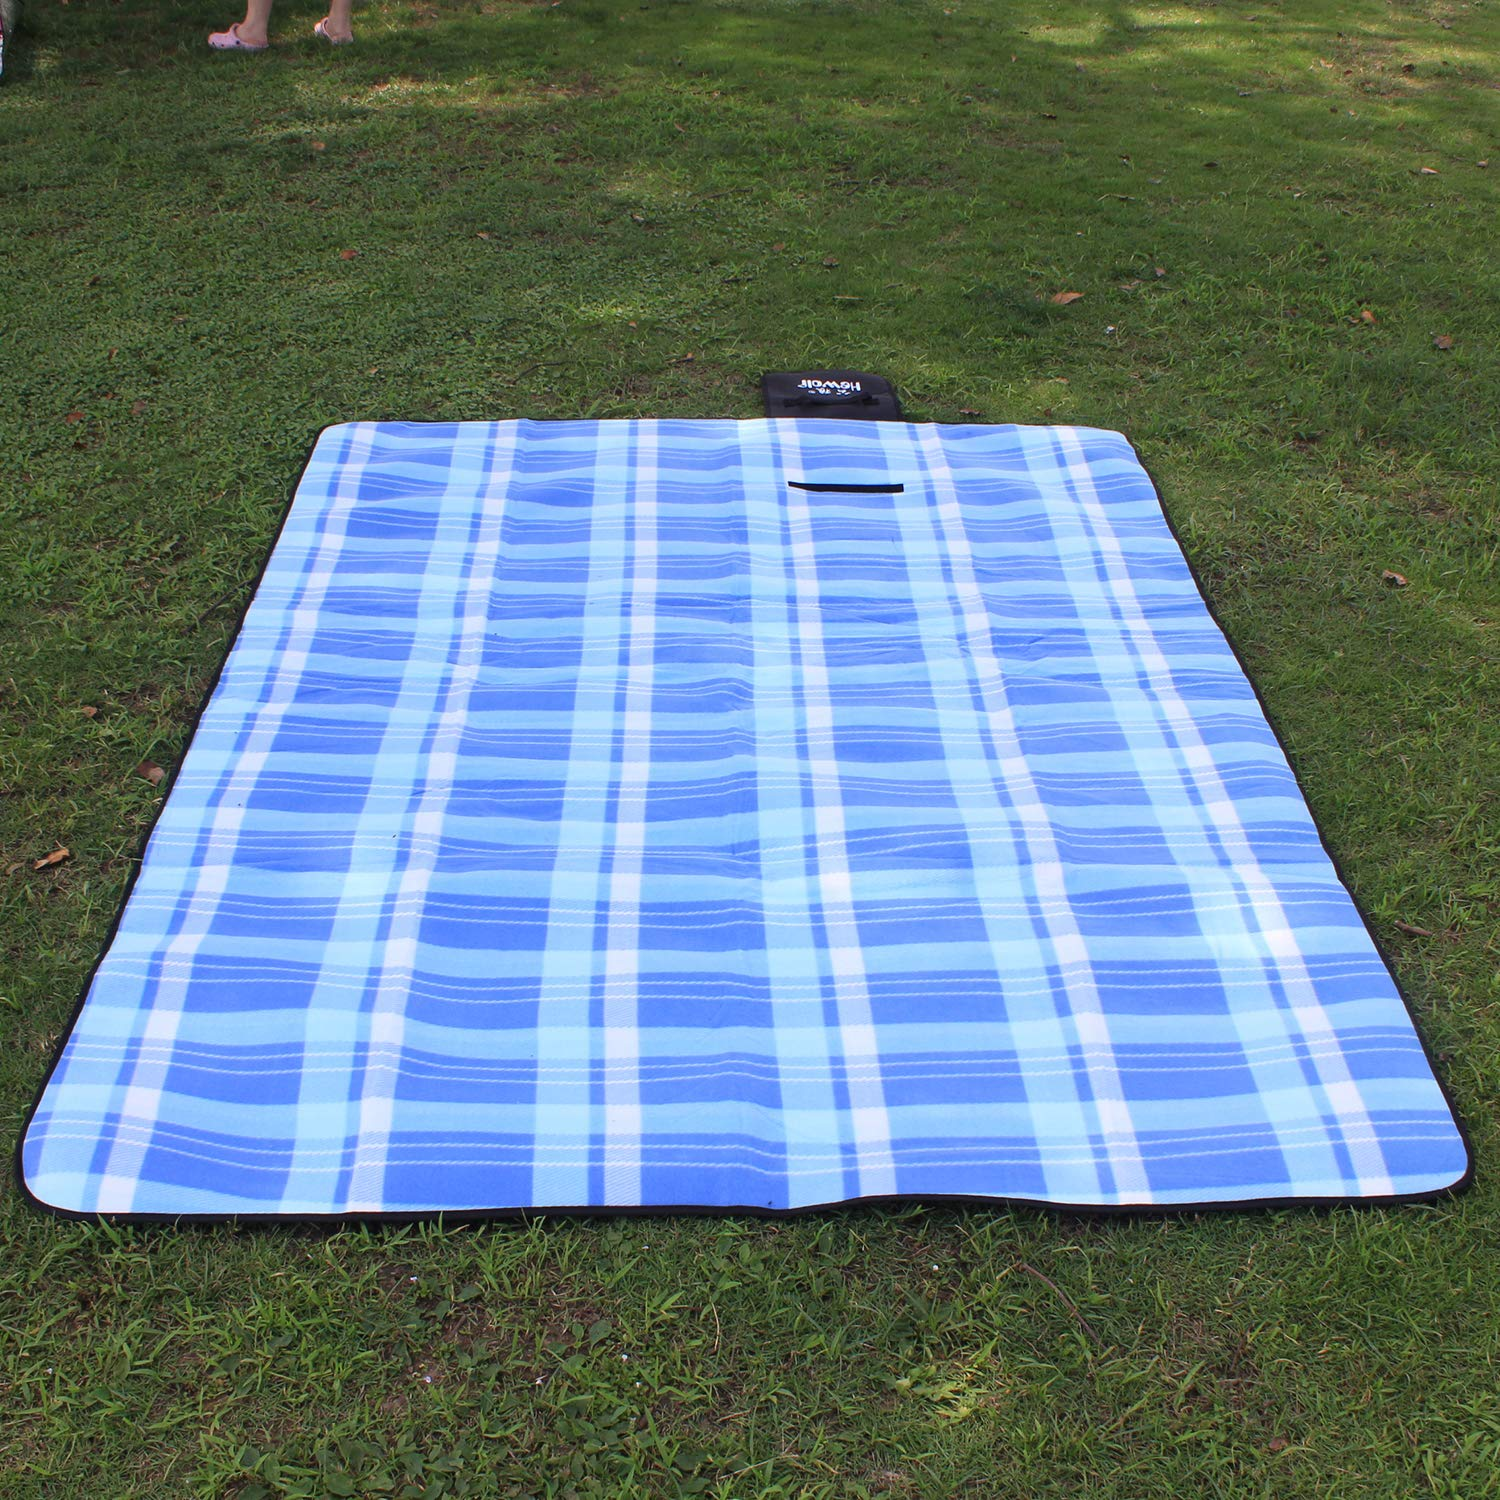 200 x 150cm Extra Large Portable Picnic Mat Luxury Soft Beach Mat for Family Camping Outdoor Hewolf Large Picnic Blanket with Waterproof Backing Thickening Fleece Surface for Winter